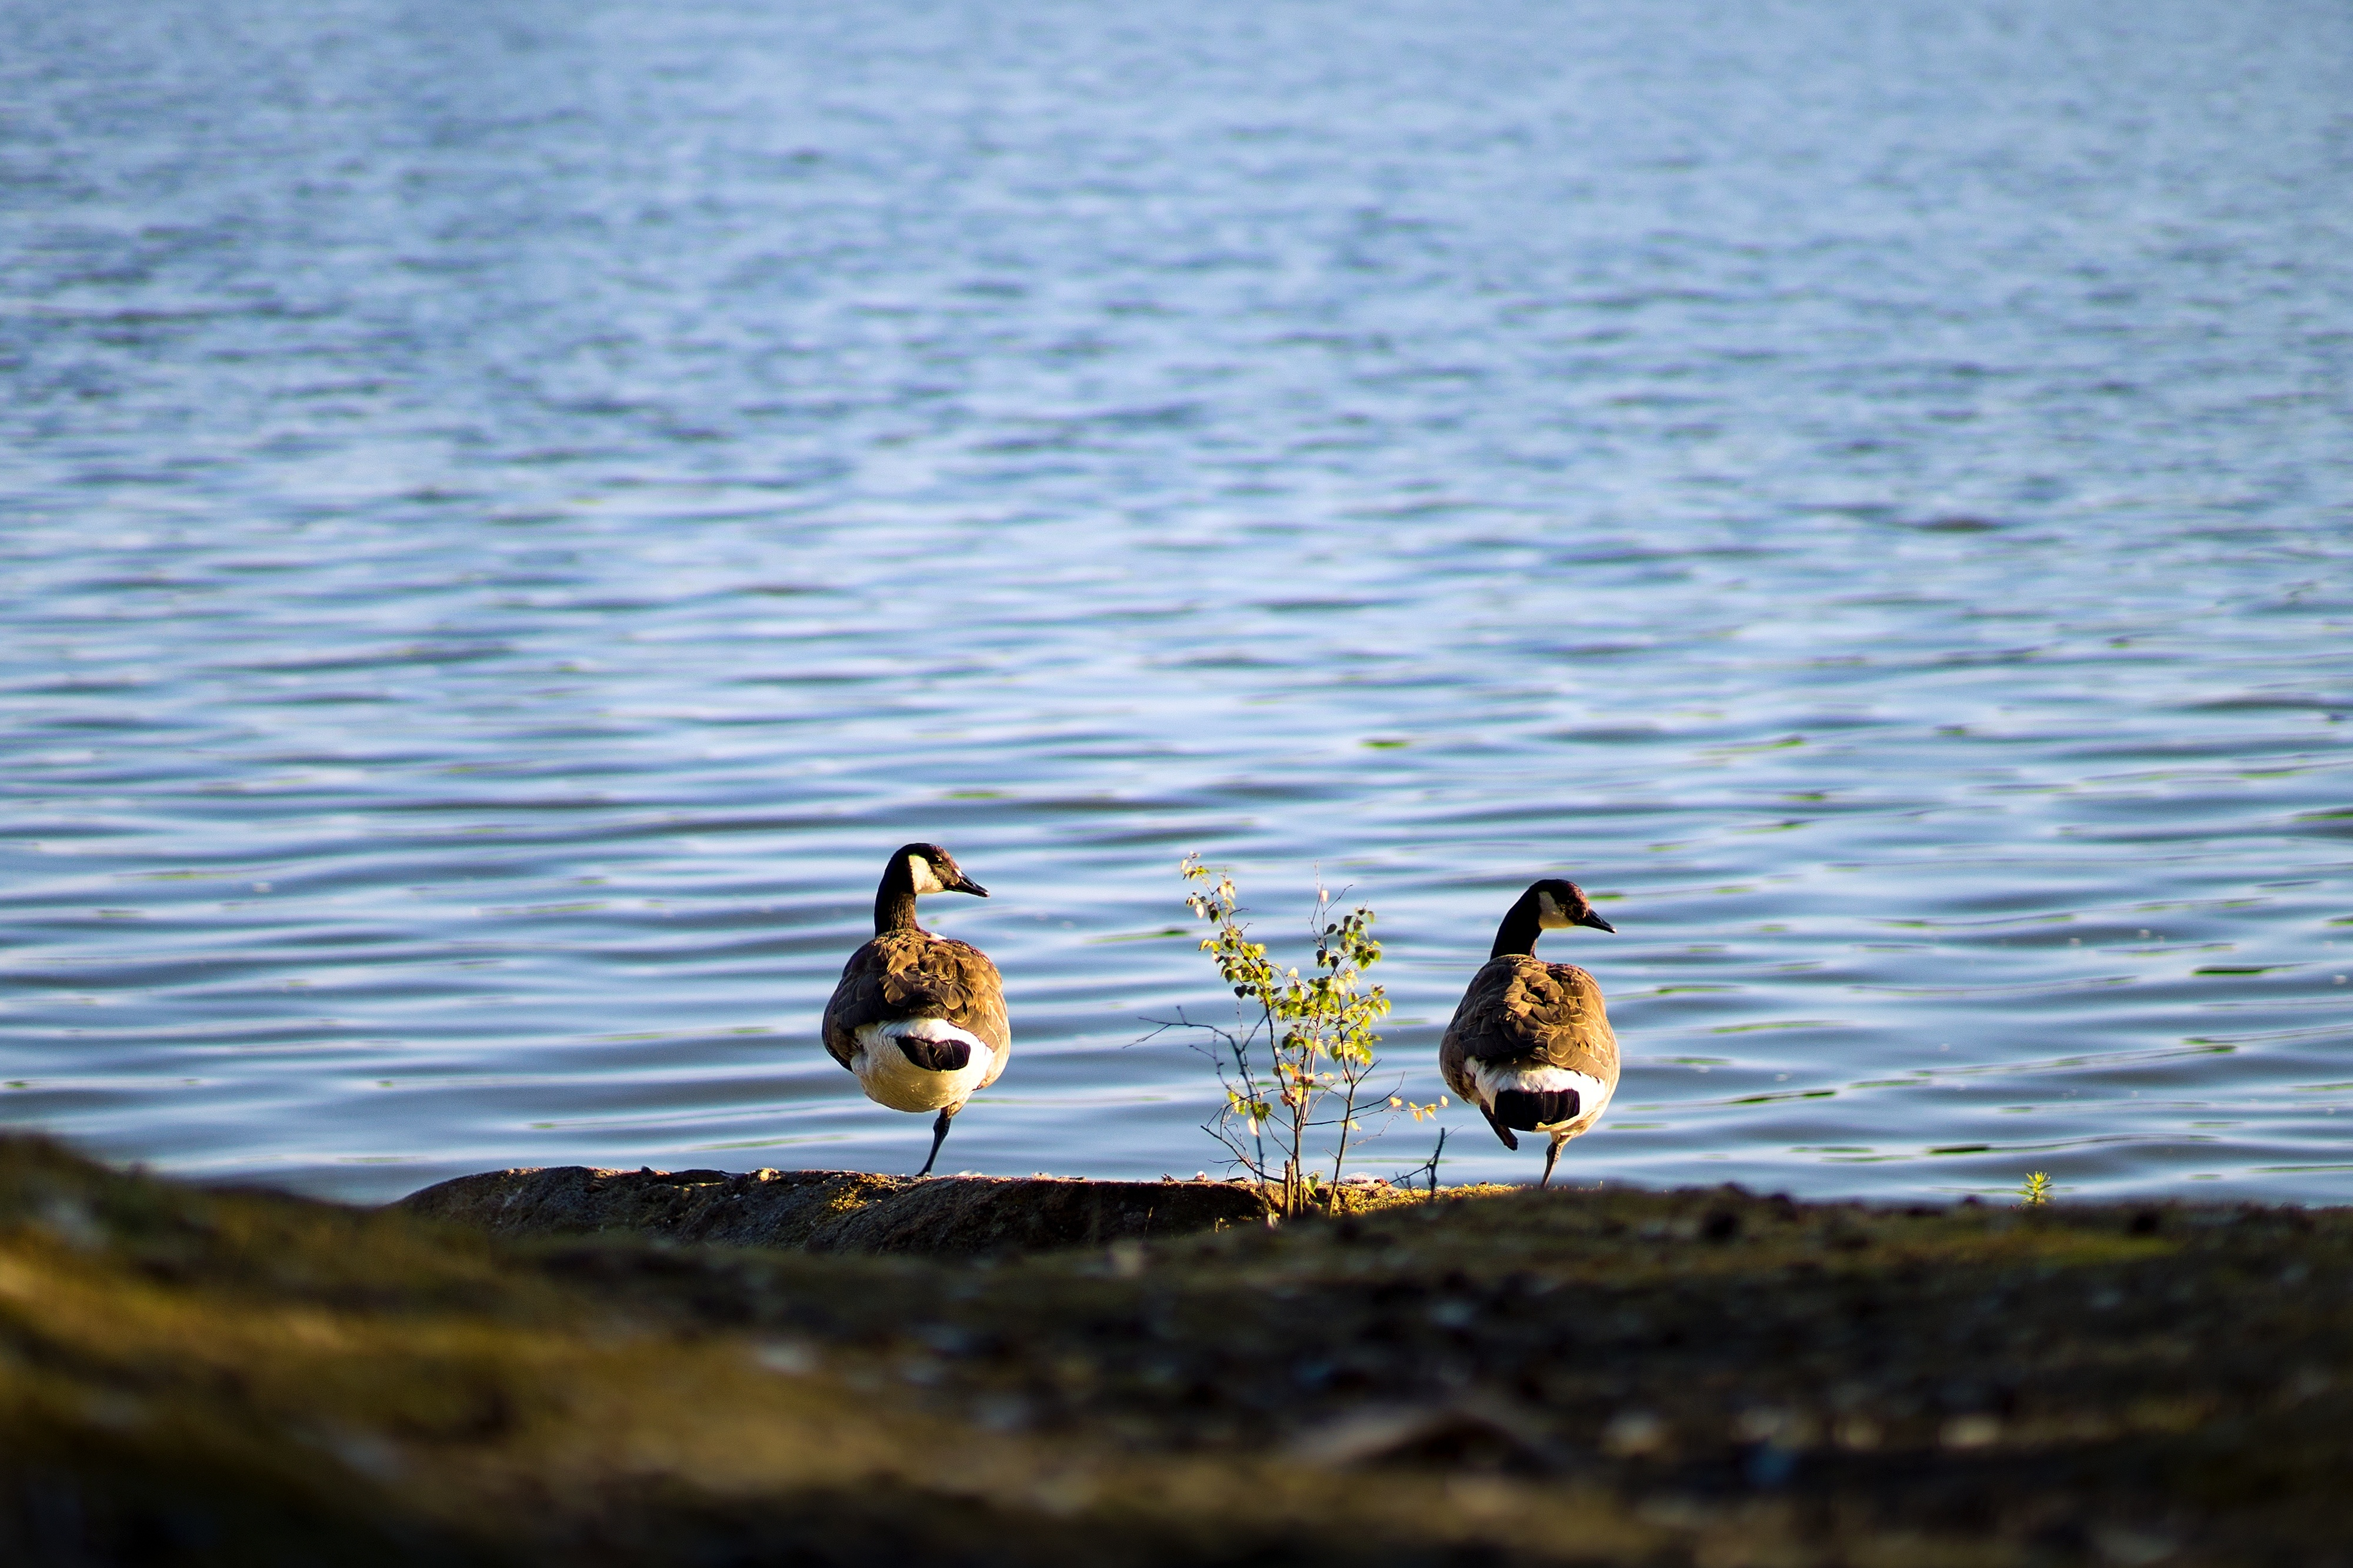 A pair of geese together on the water site